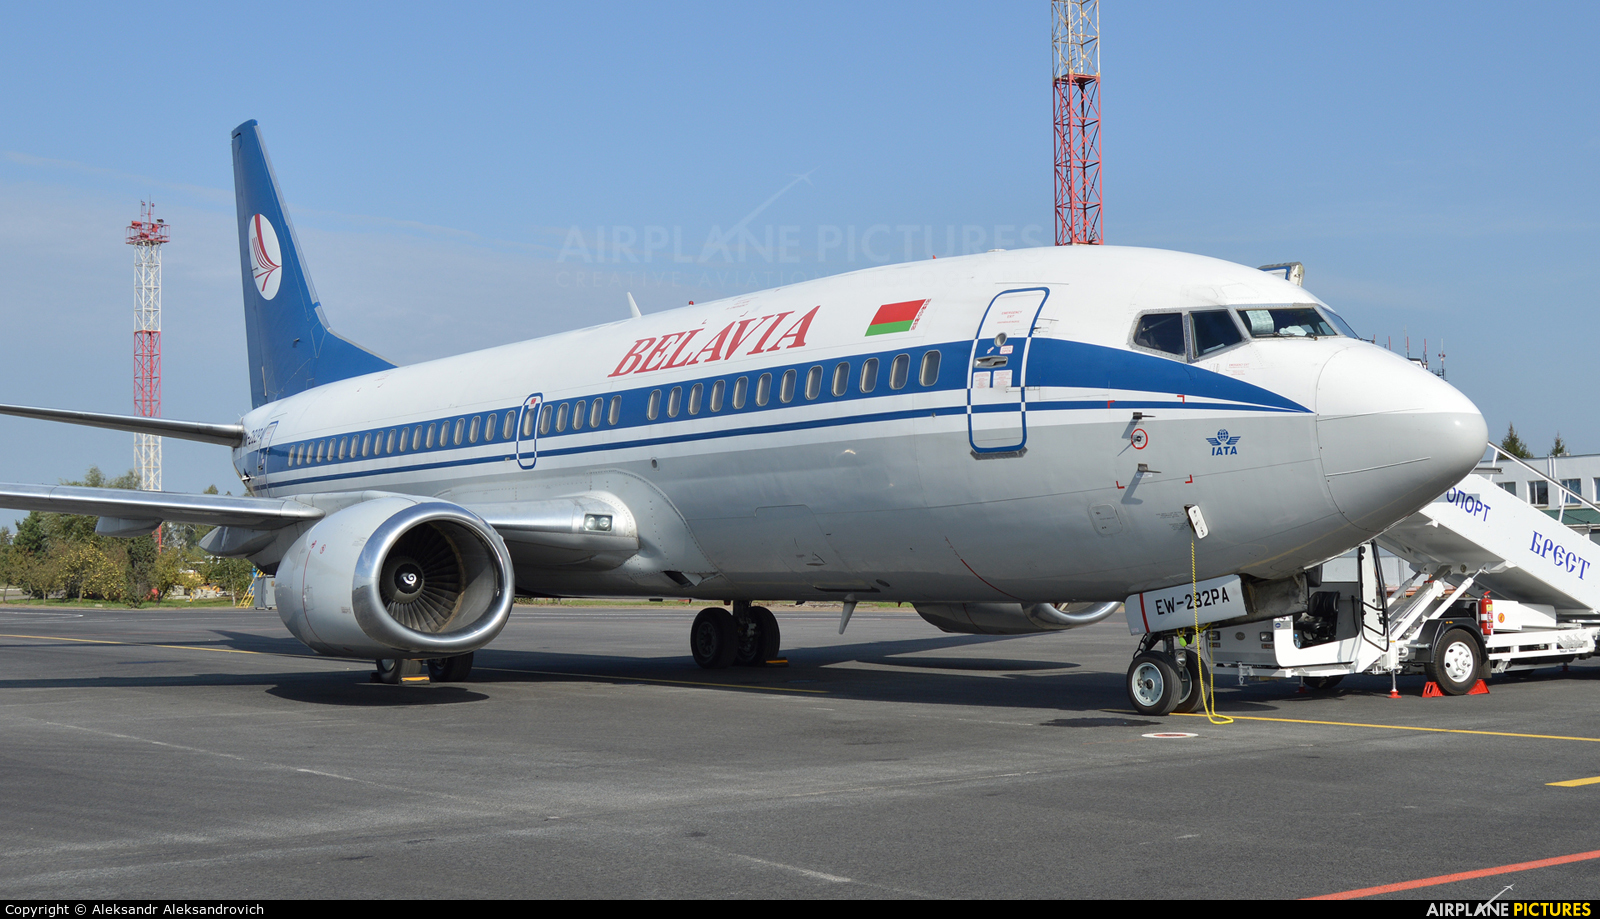 Belavia EW-282PA aircraft at Brest Airport